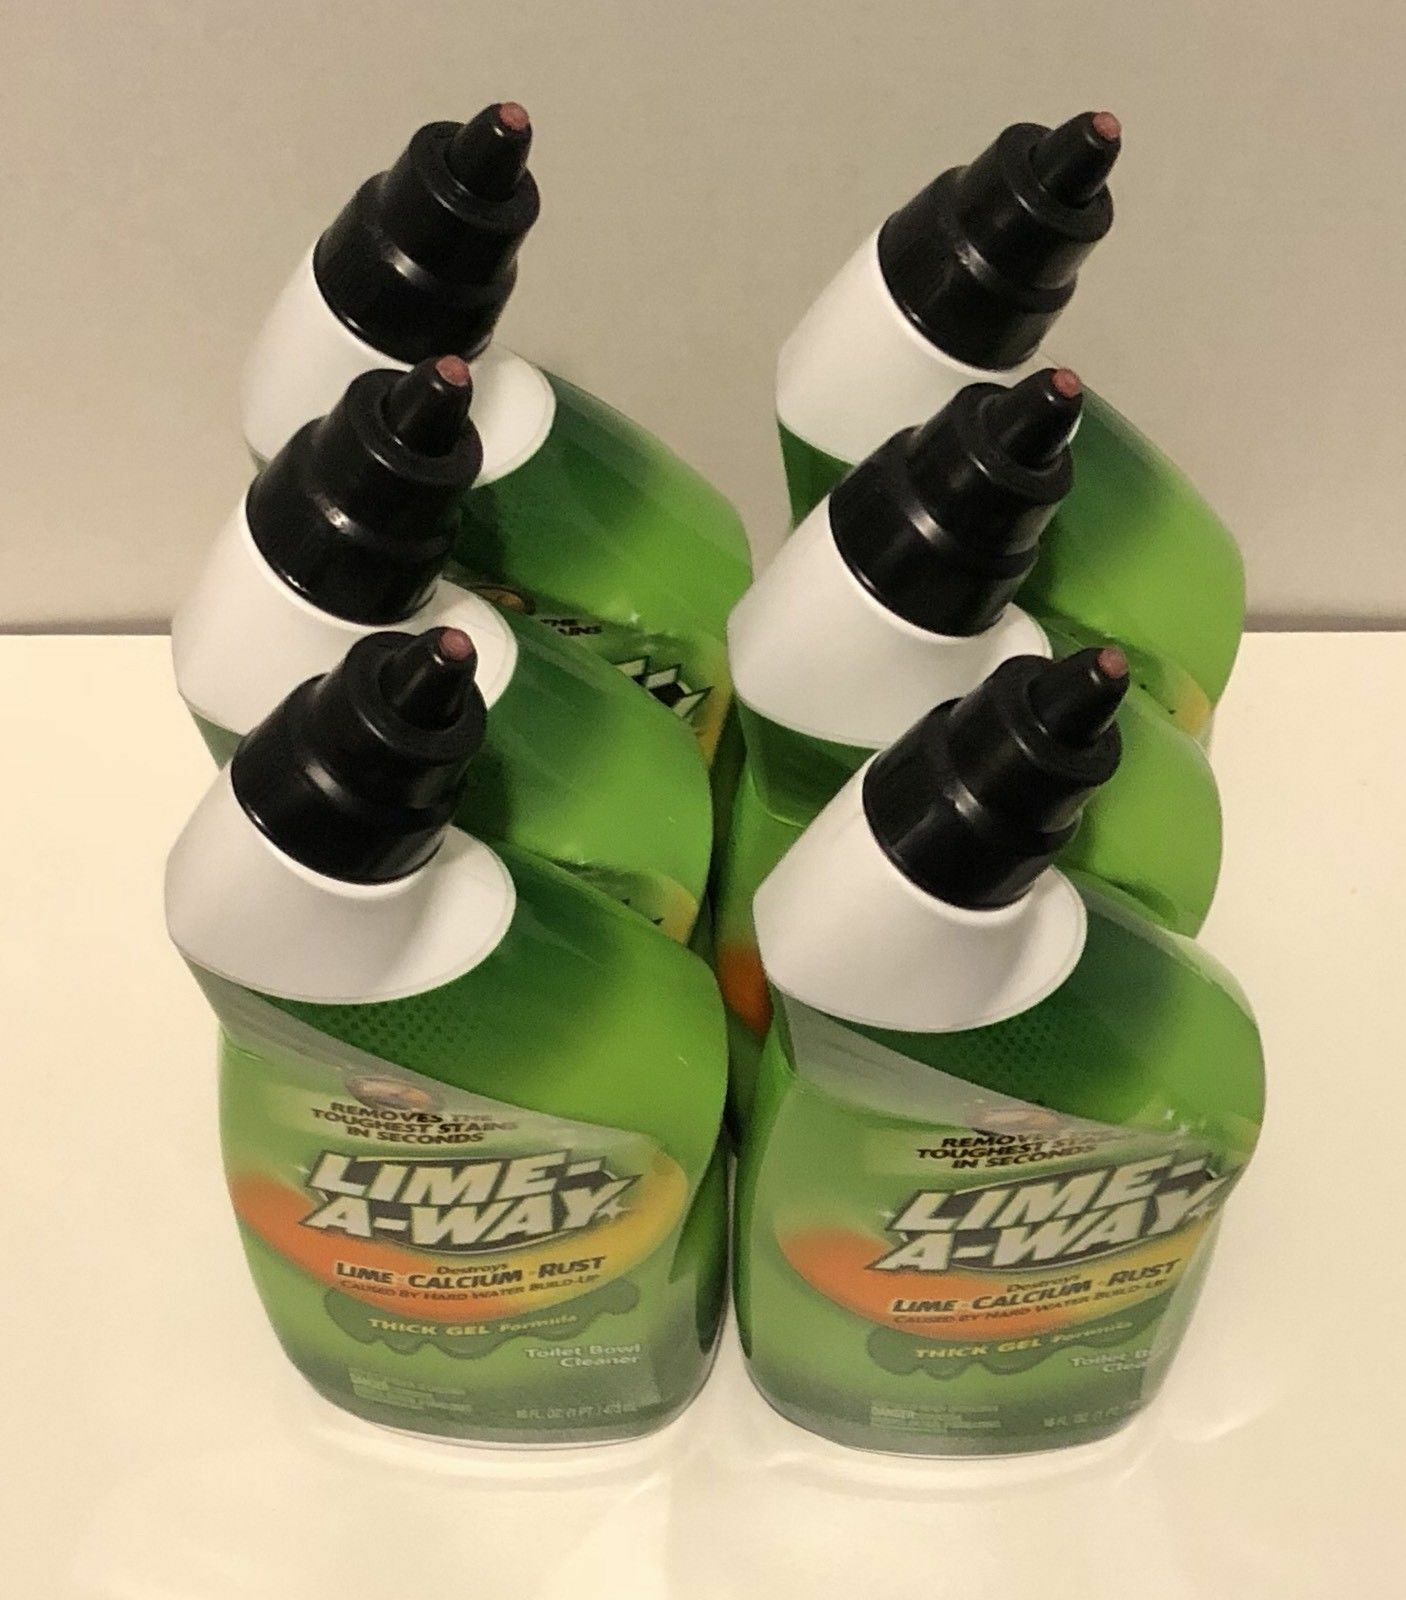 6 Lime A Way Lime Away Thick Gel Formula Toilet Bowl